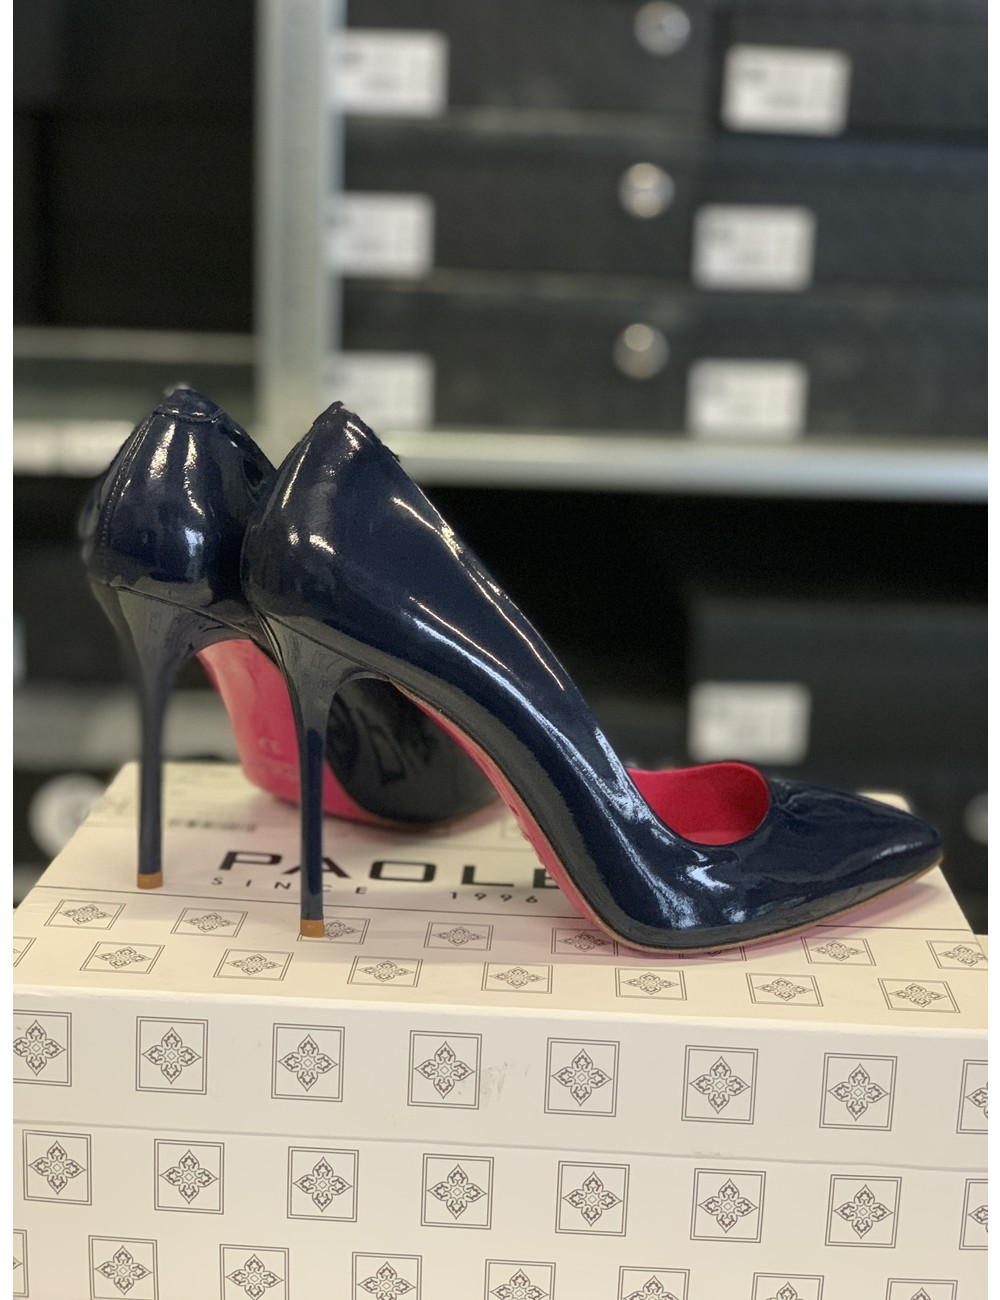 Paoletti Paoletti pumps real leather blue pink -outlet